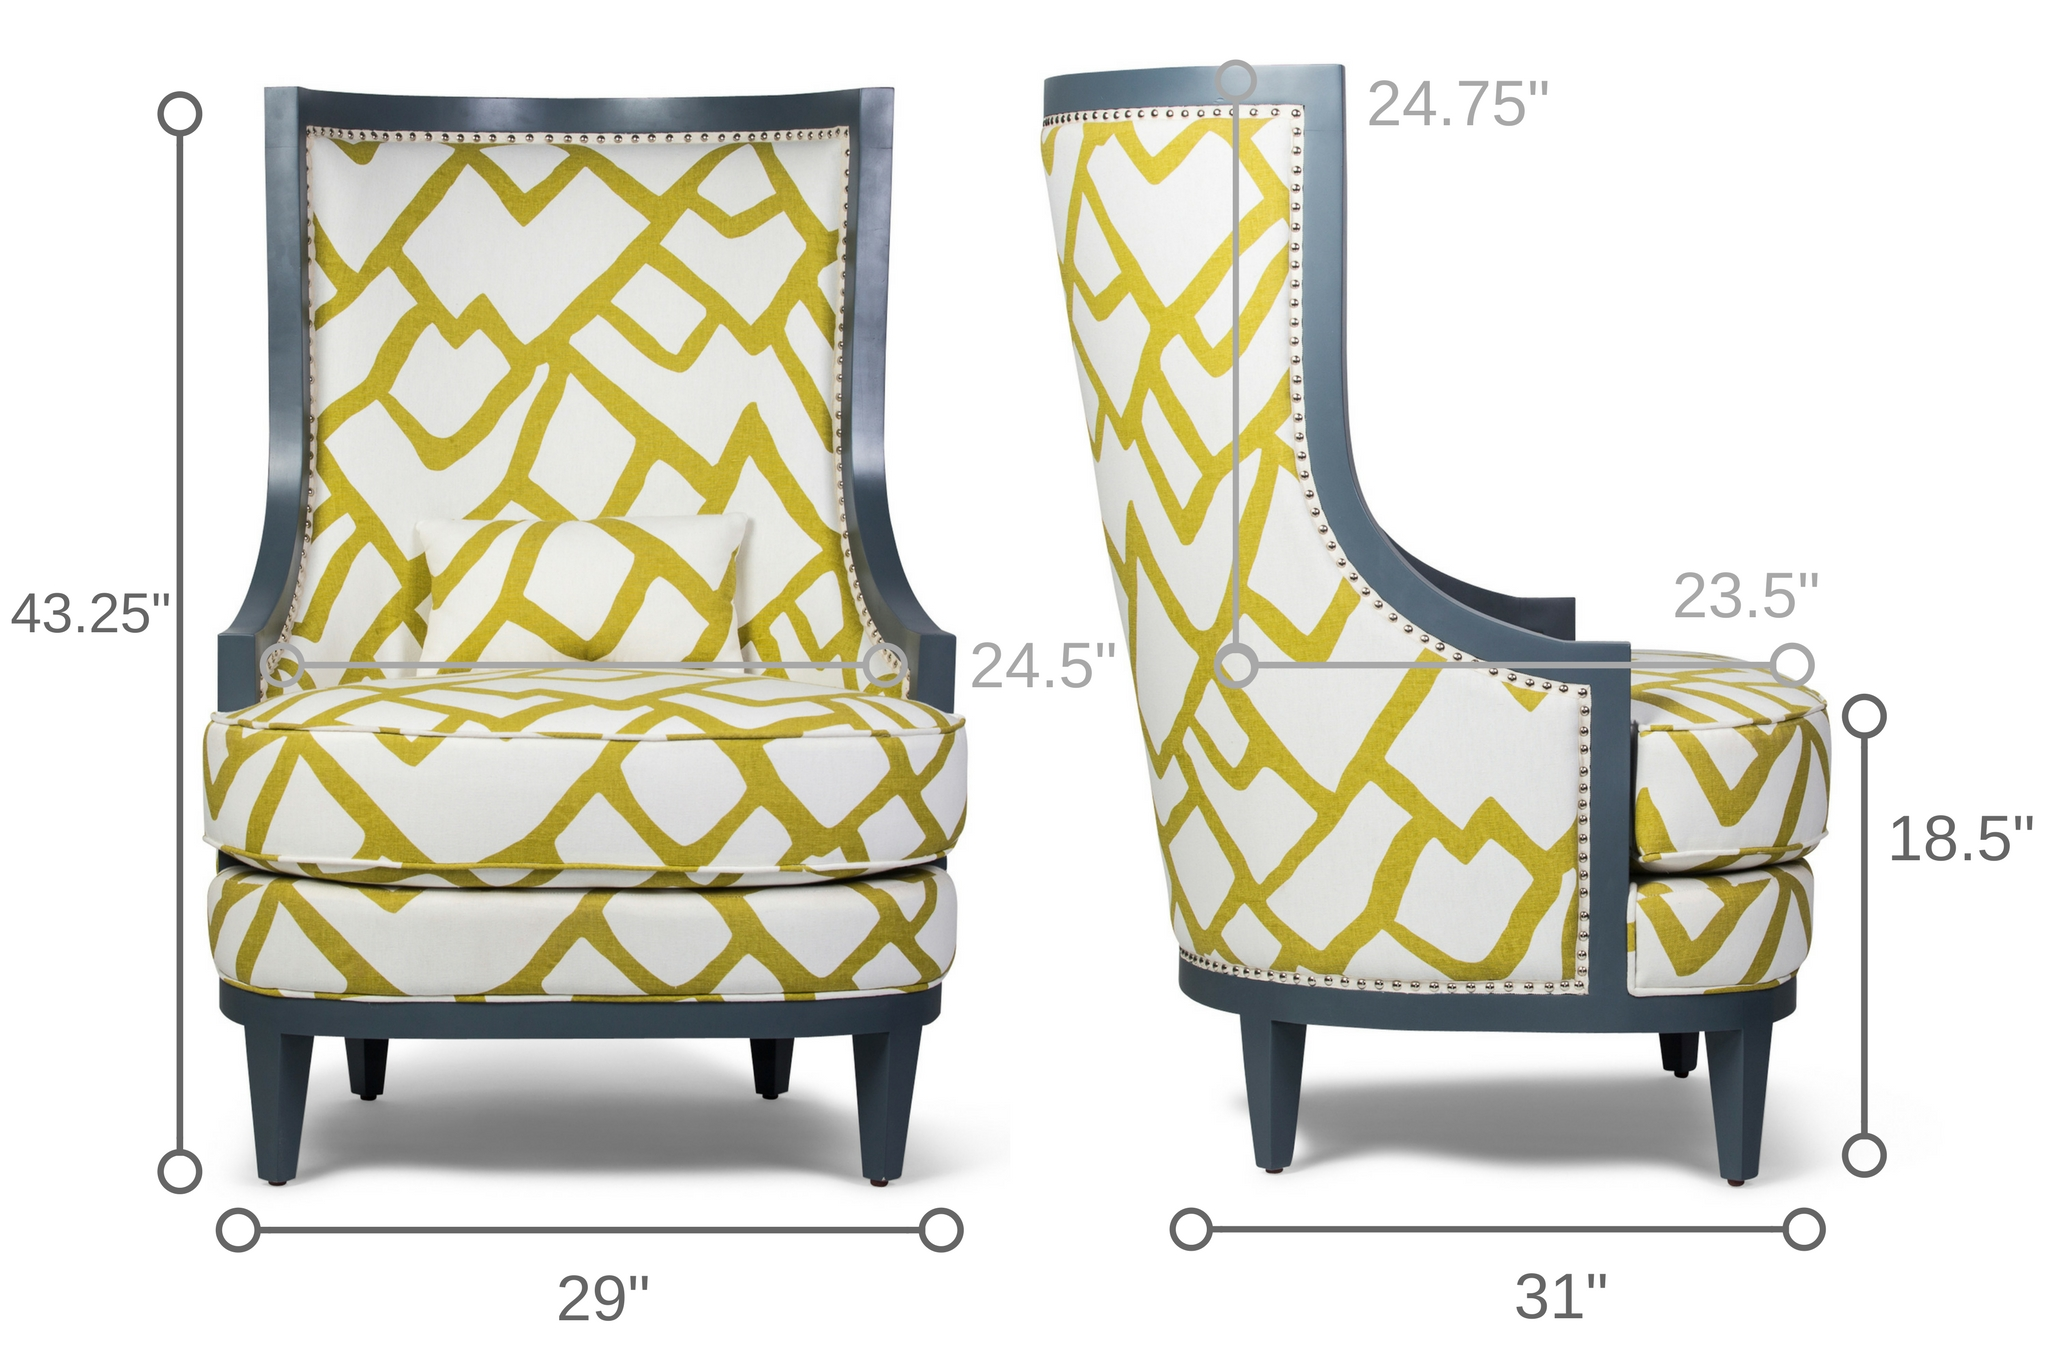 Dowel Furniture Royale Wing Chair Dimensions